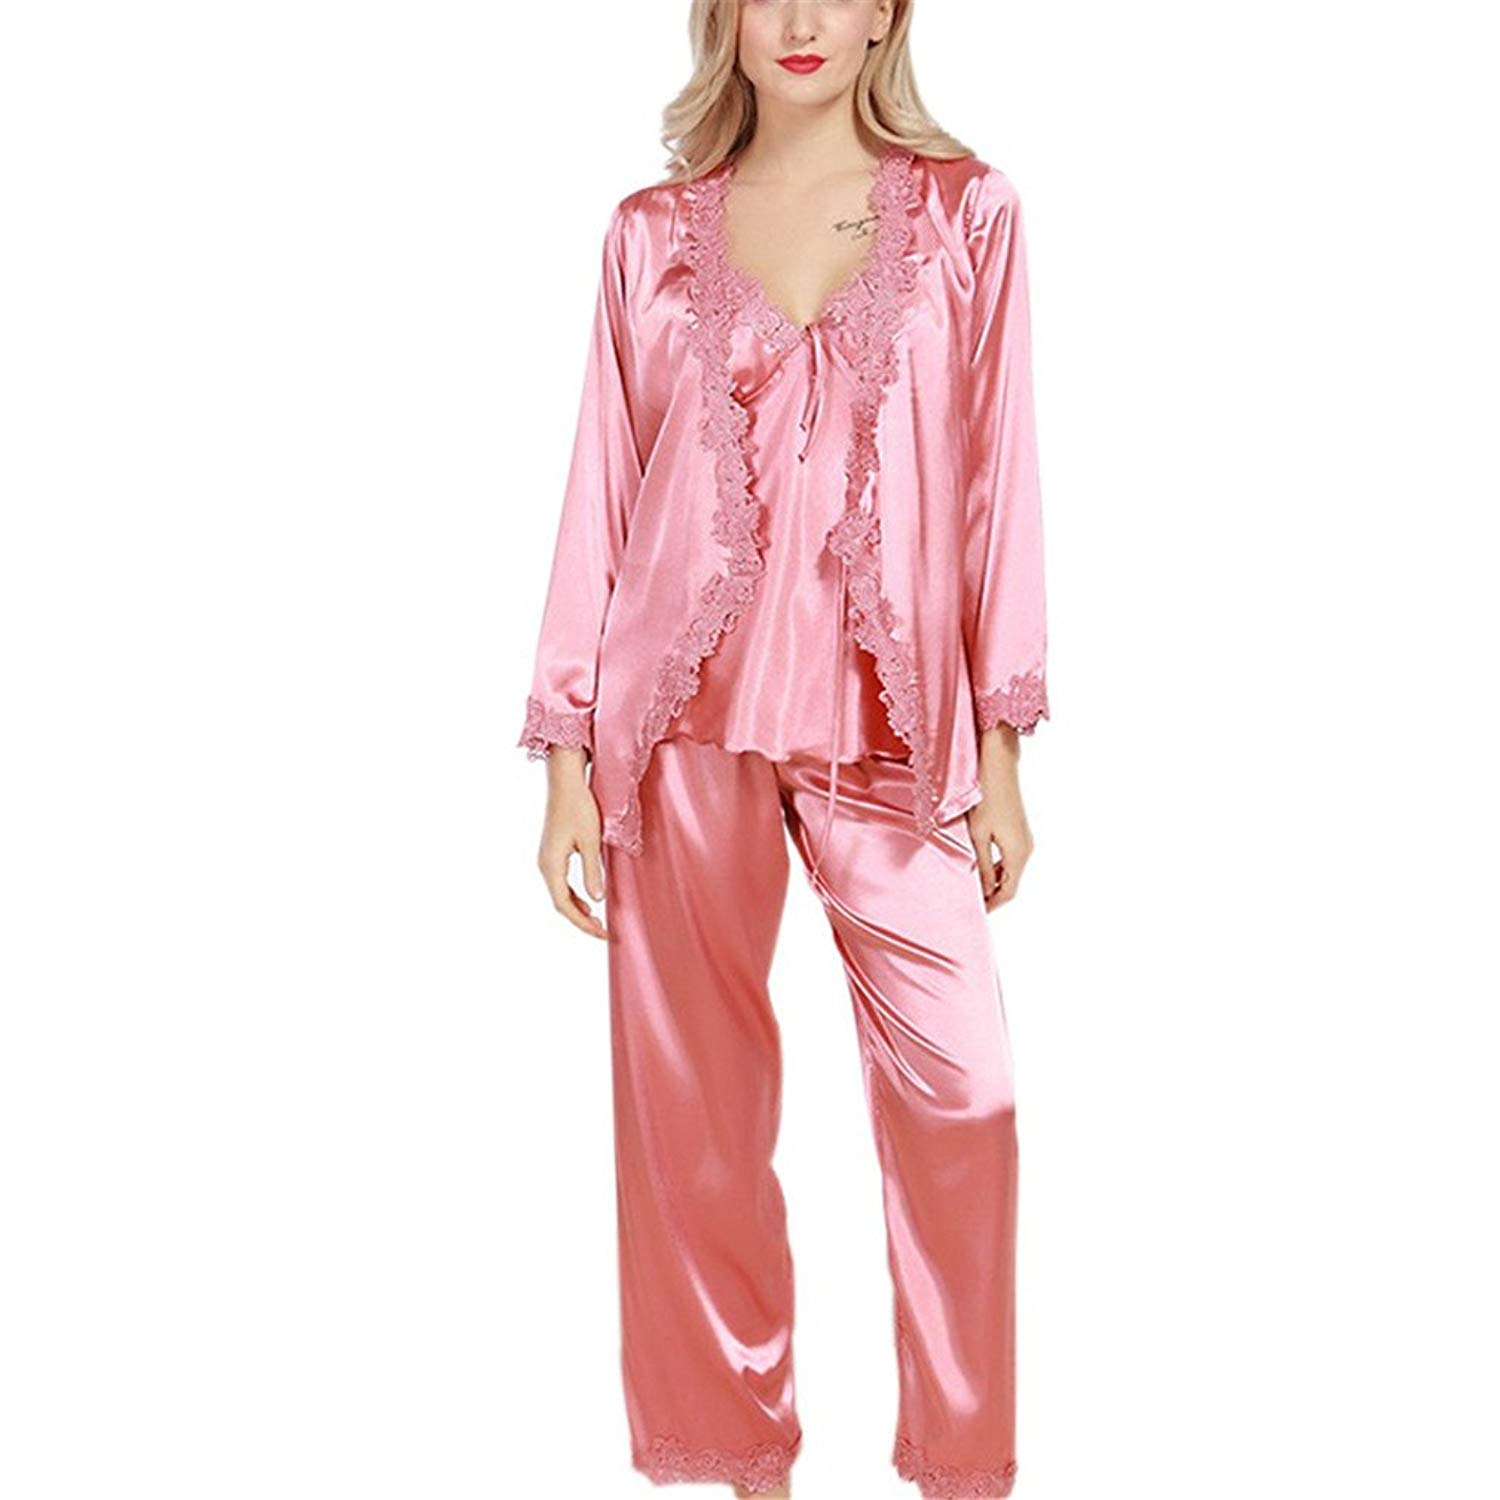 c94e242de8 Get Quotations · Luxurious Women Robe Pajama Sets Faux Silk Ladies 3 Pcs  Lace Silky Pajamas Pants Set Pajama